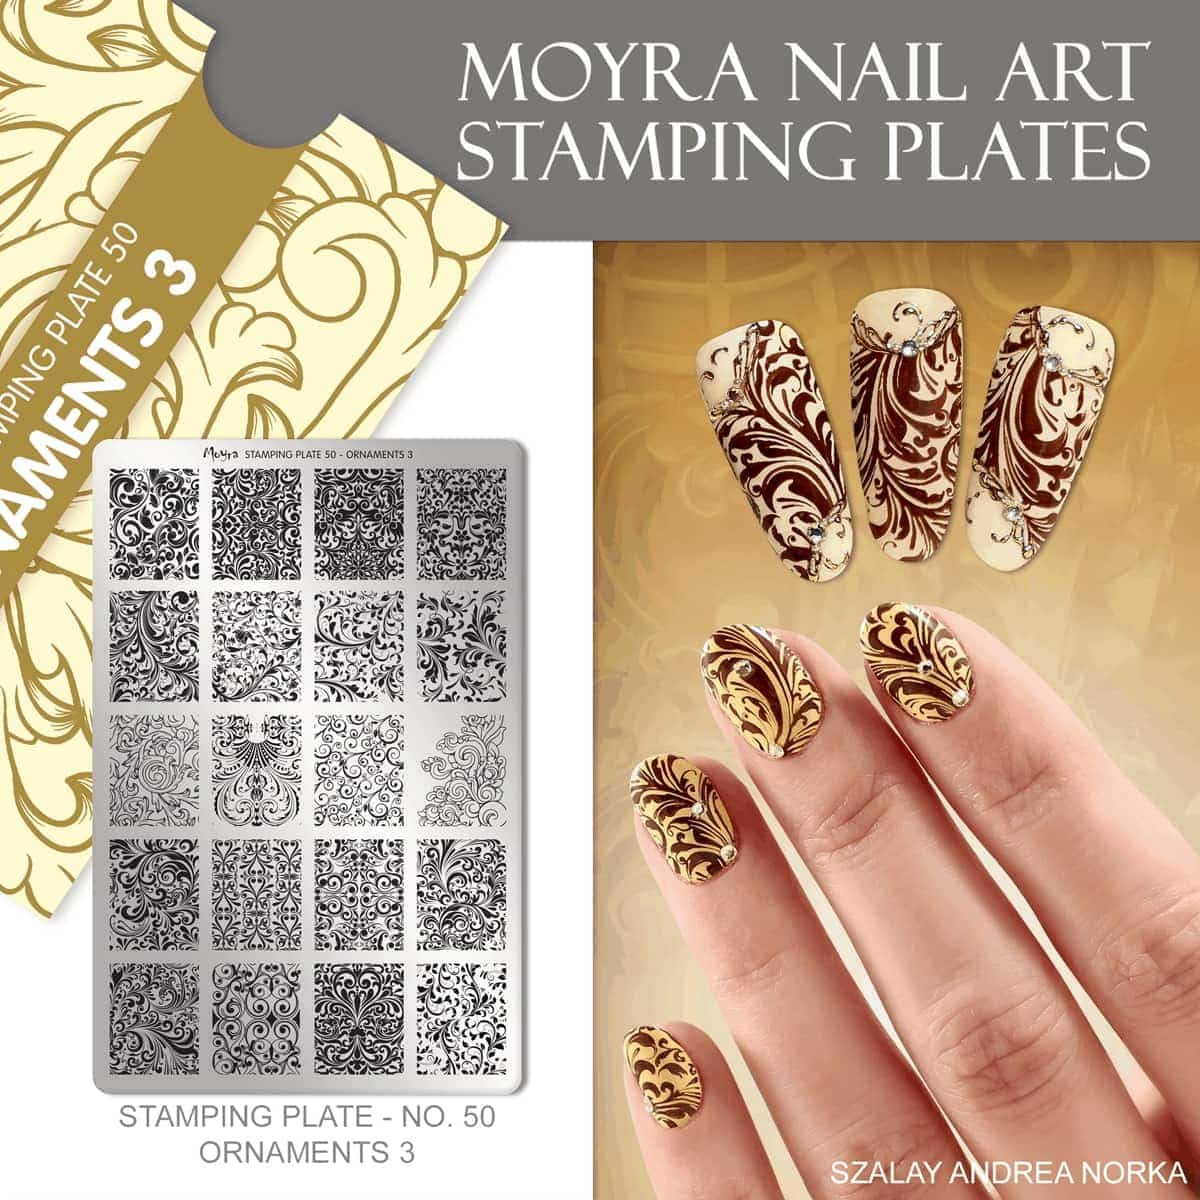 Moyra_stamping_plate_50_ornaments3_arrived